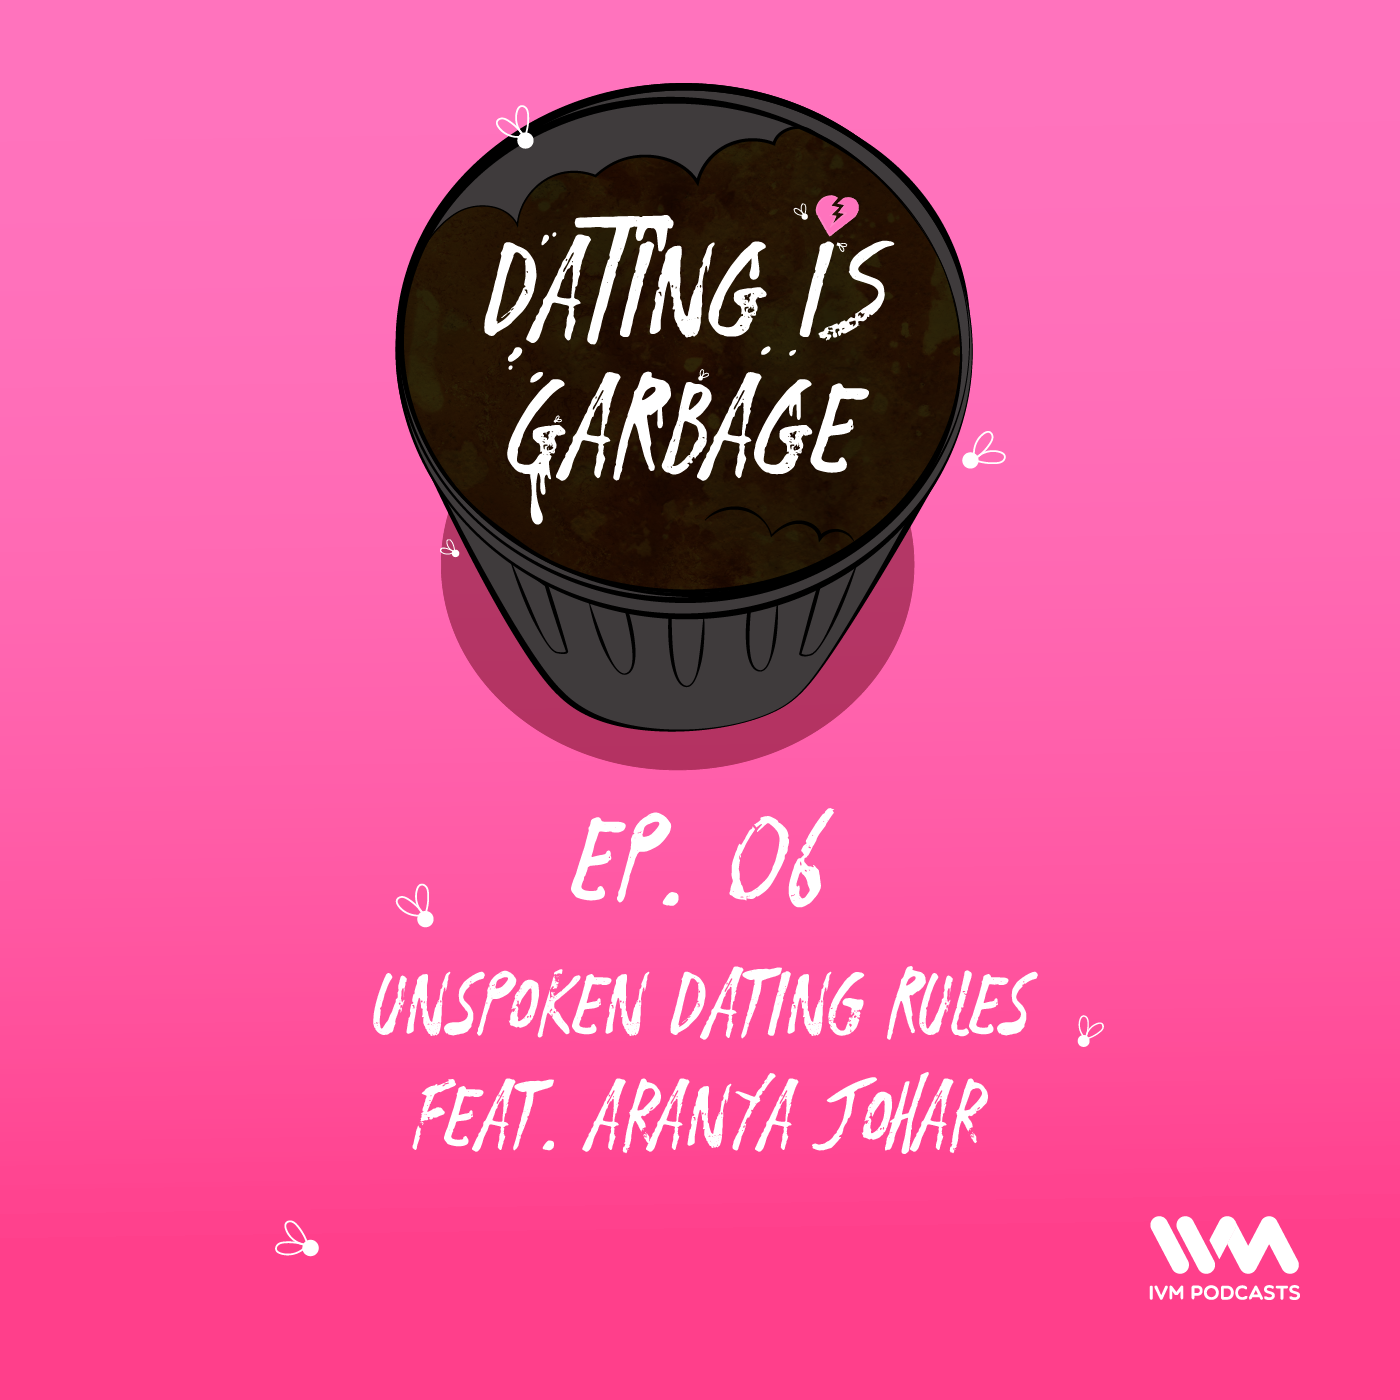 Ep. 06: Unspoken Dating Rules